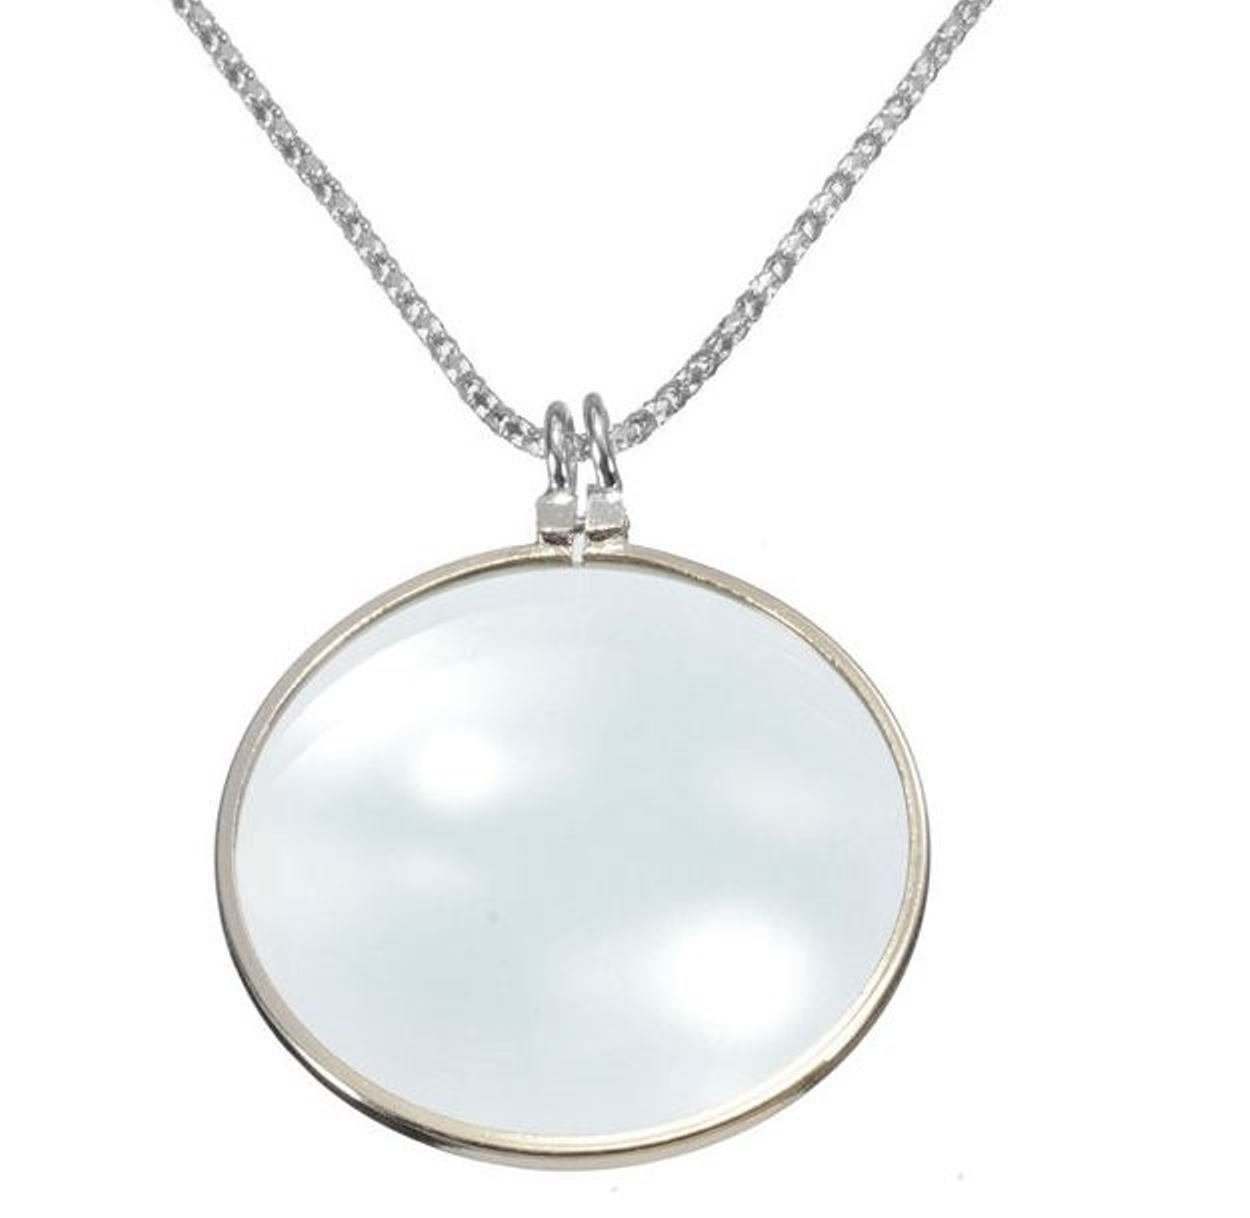 5X Silver Gold Magnifier Magnifying Glass Pendant Necklace (Silver)